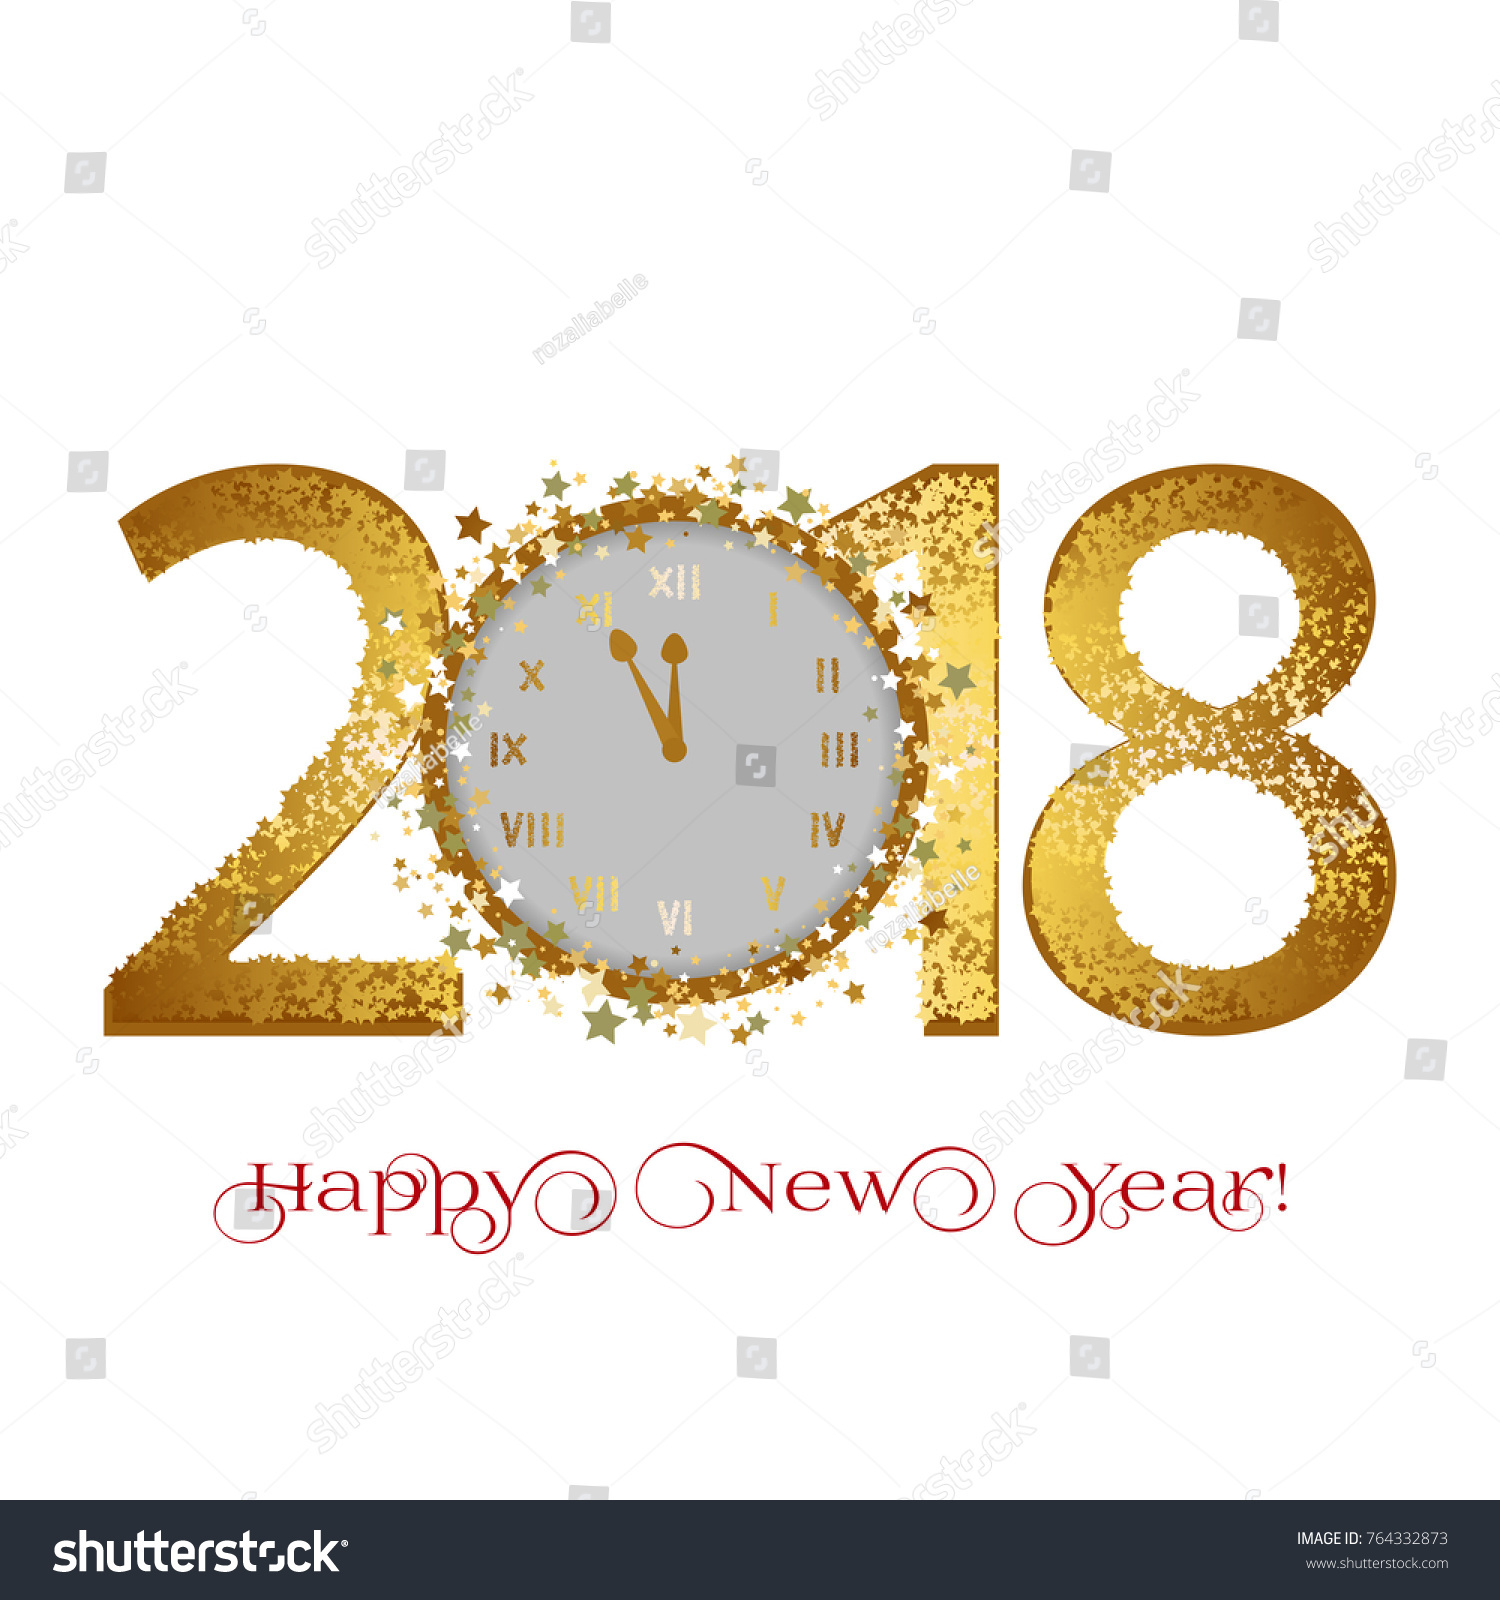 happy new year 2018 golden stars and clocks on a white background